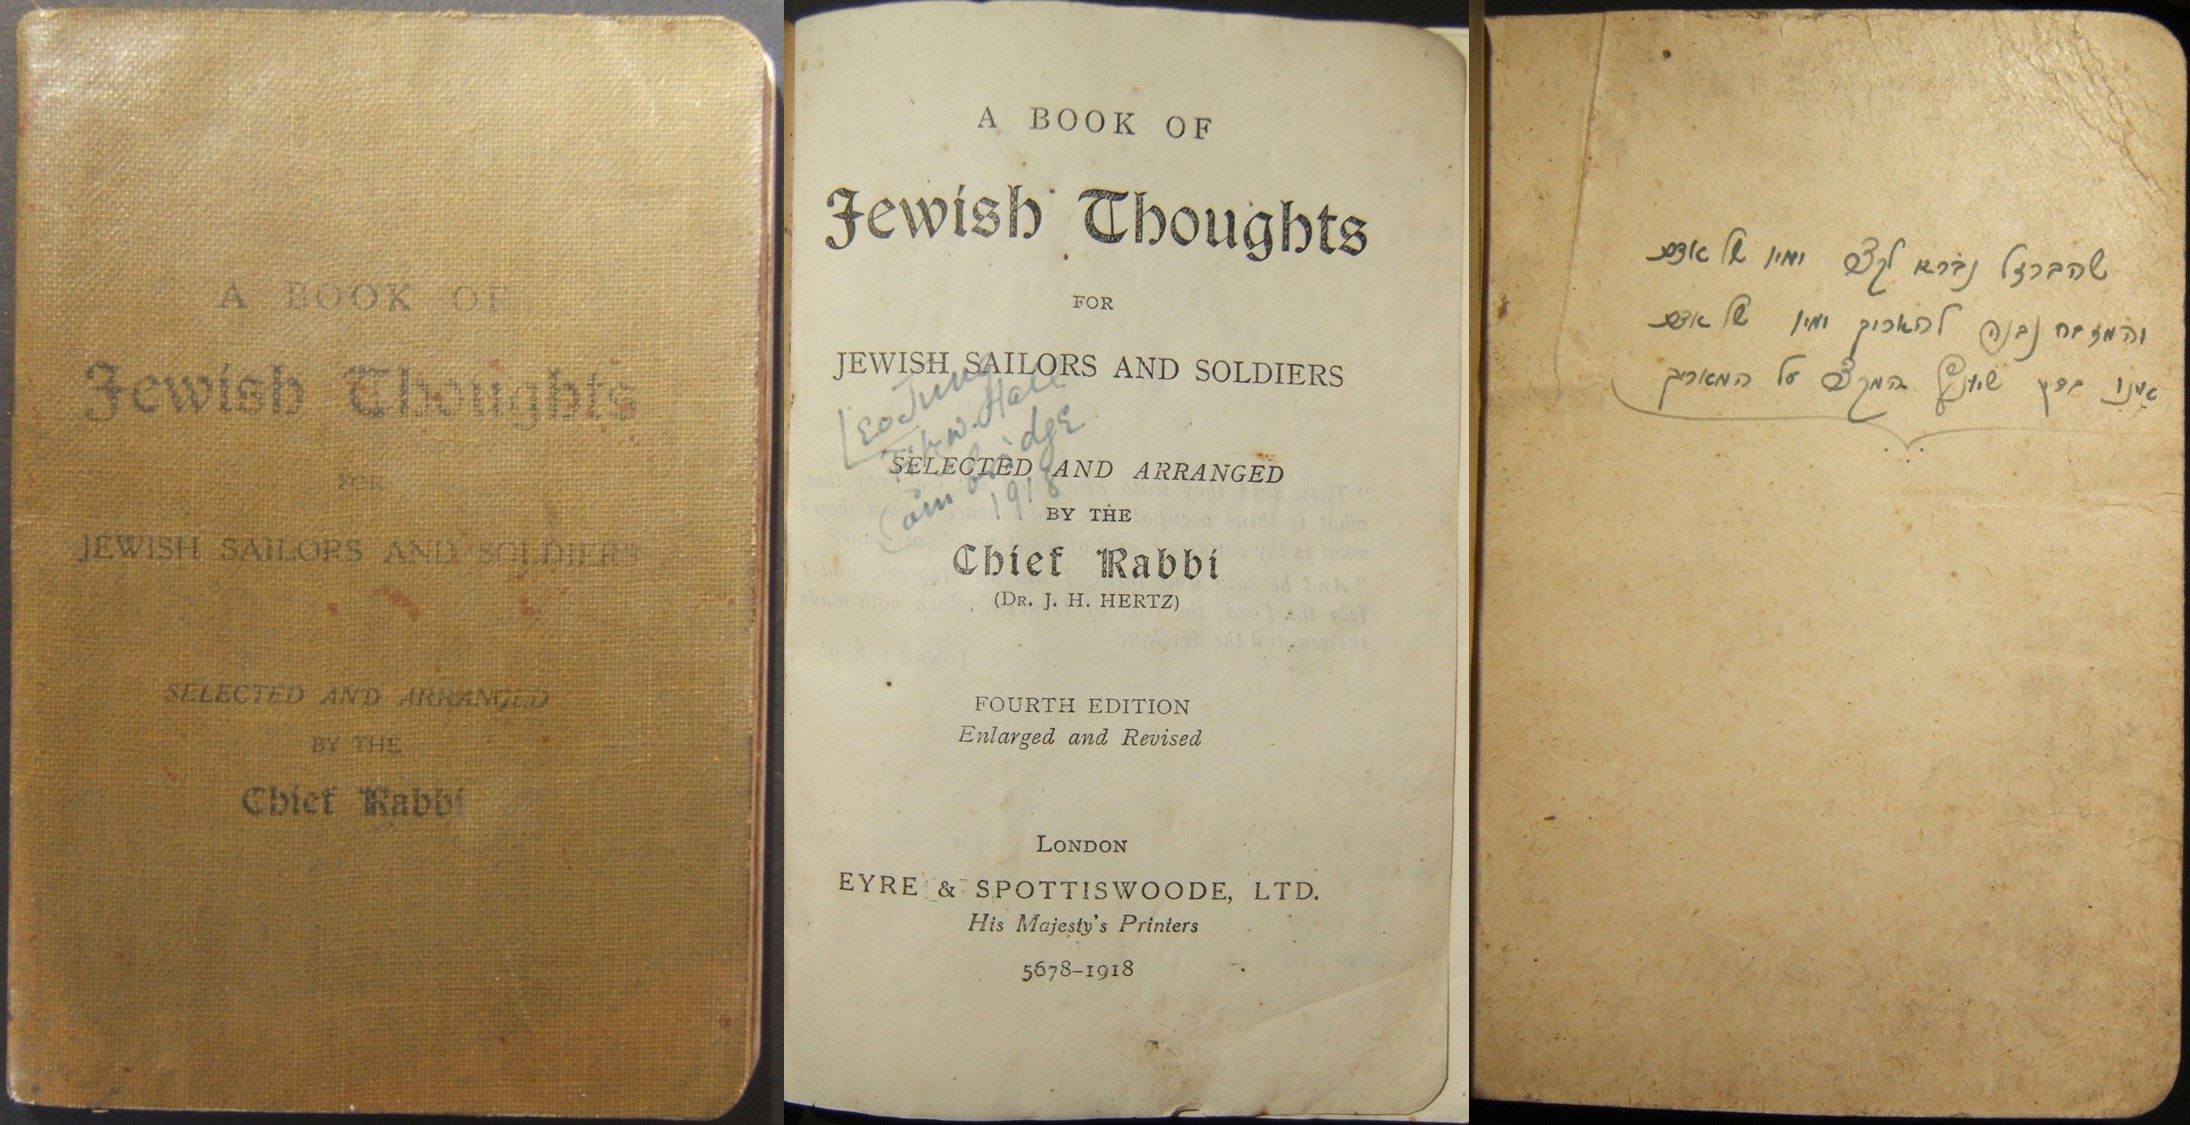 A Book of Jewish Thoughts for Jewish Sailors and Soldiers, by Chief Rabbi Joseph Herman Hertz; 1918 4th ed., printed by Eyre & Spottiswoode; 238 +2 pp. With opening salutation by t